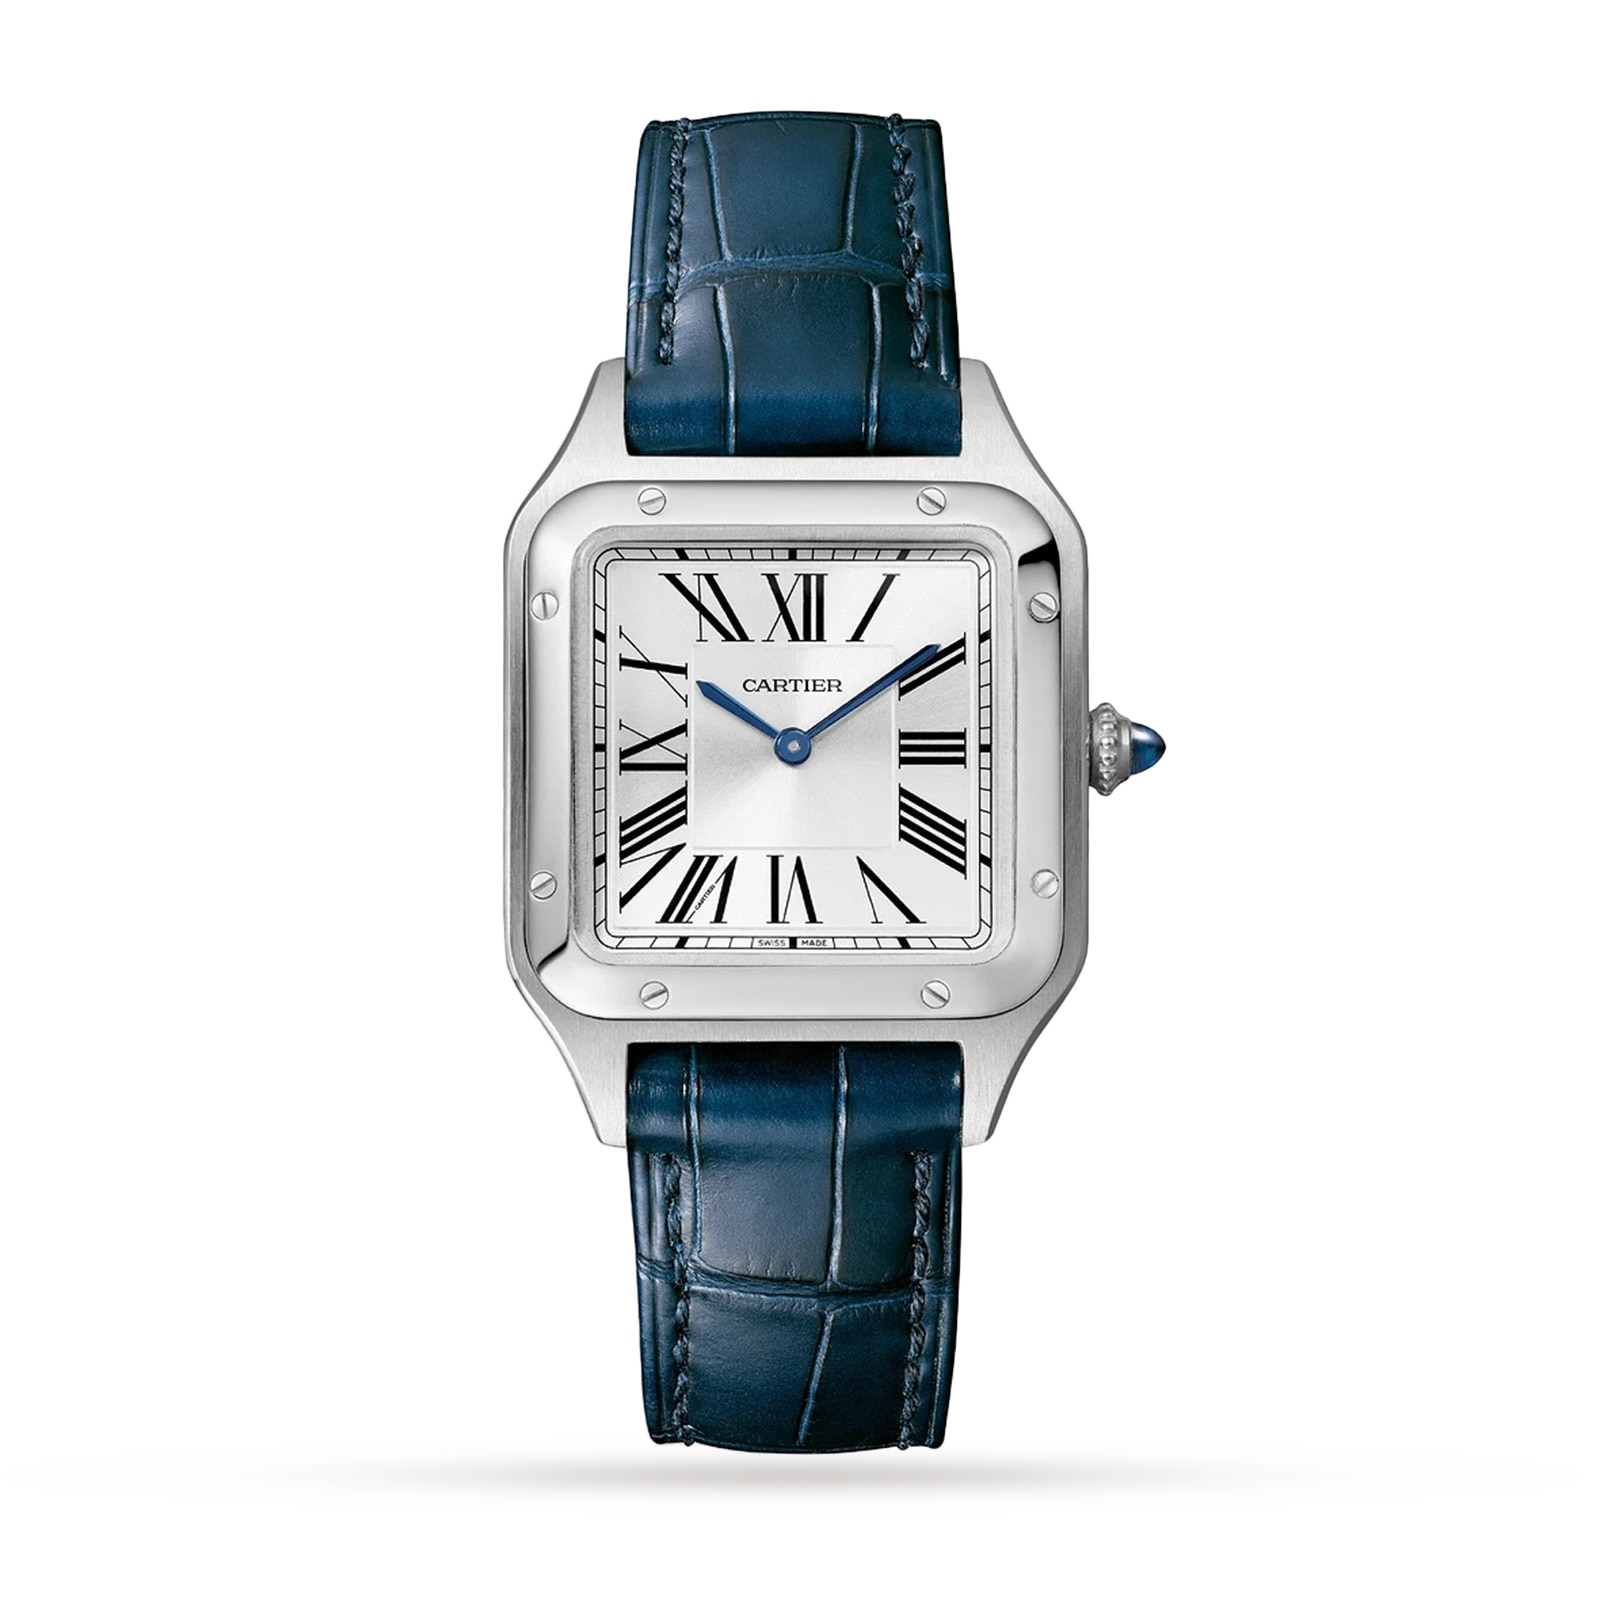 Cartier Santos- Dumont Small model, steel, leather